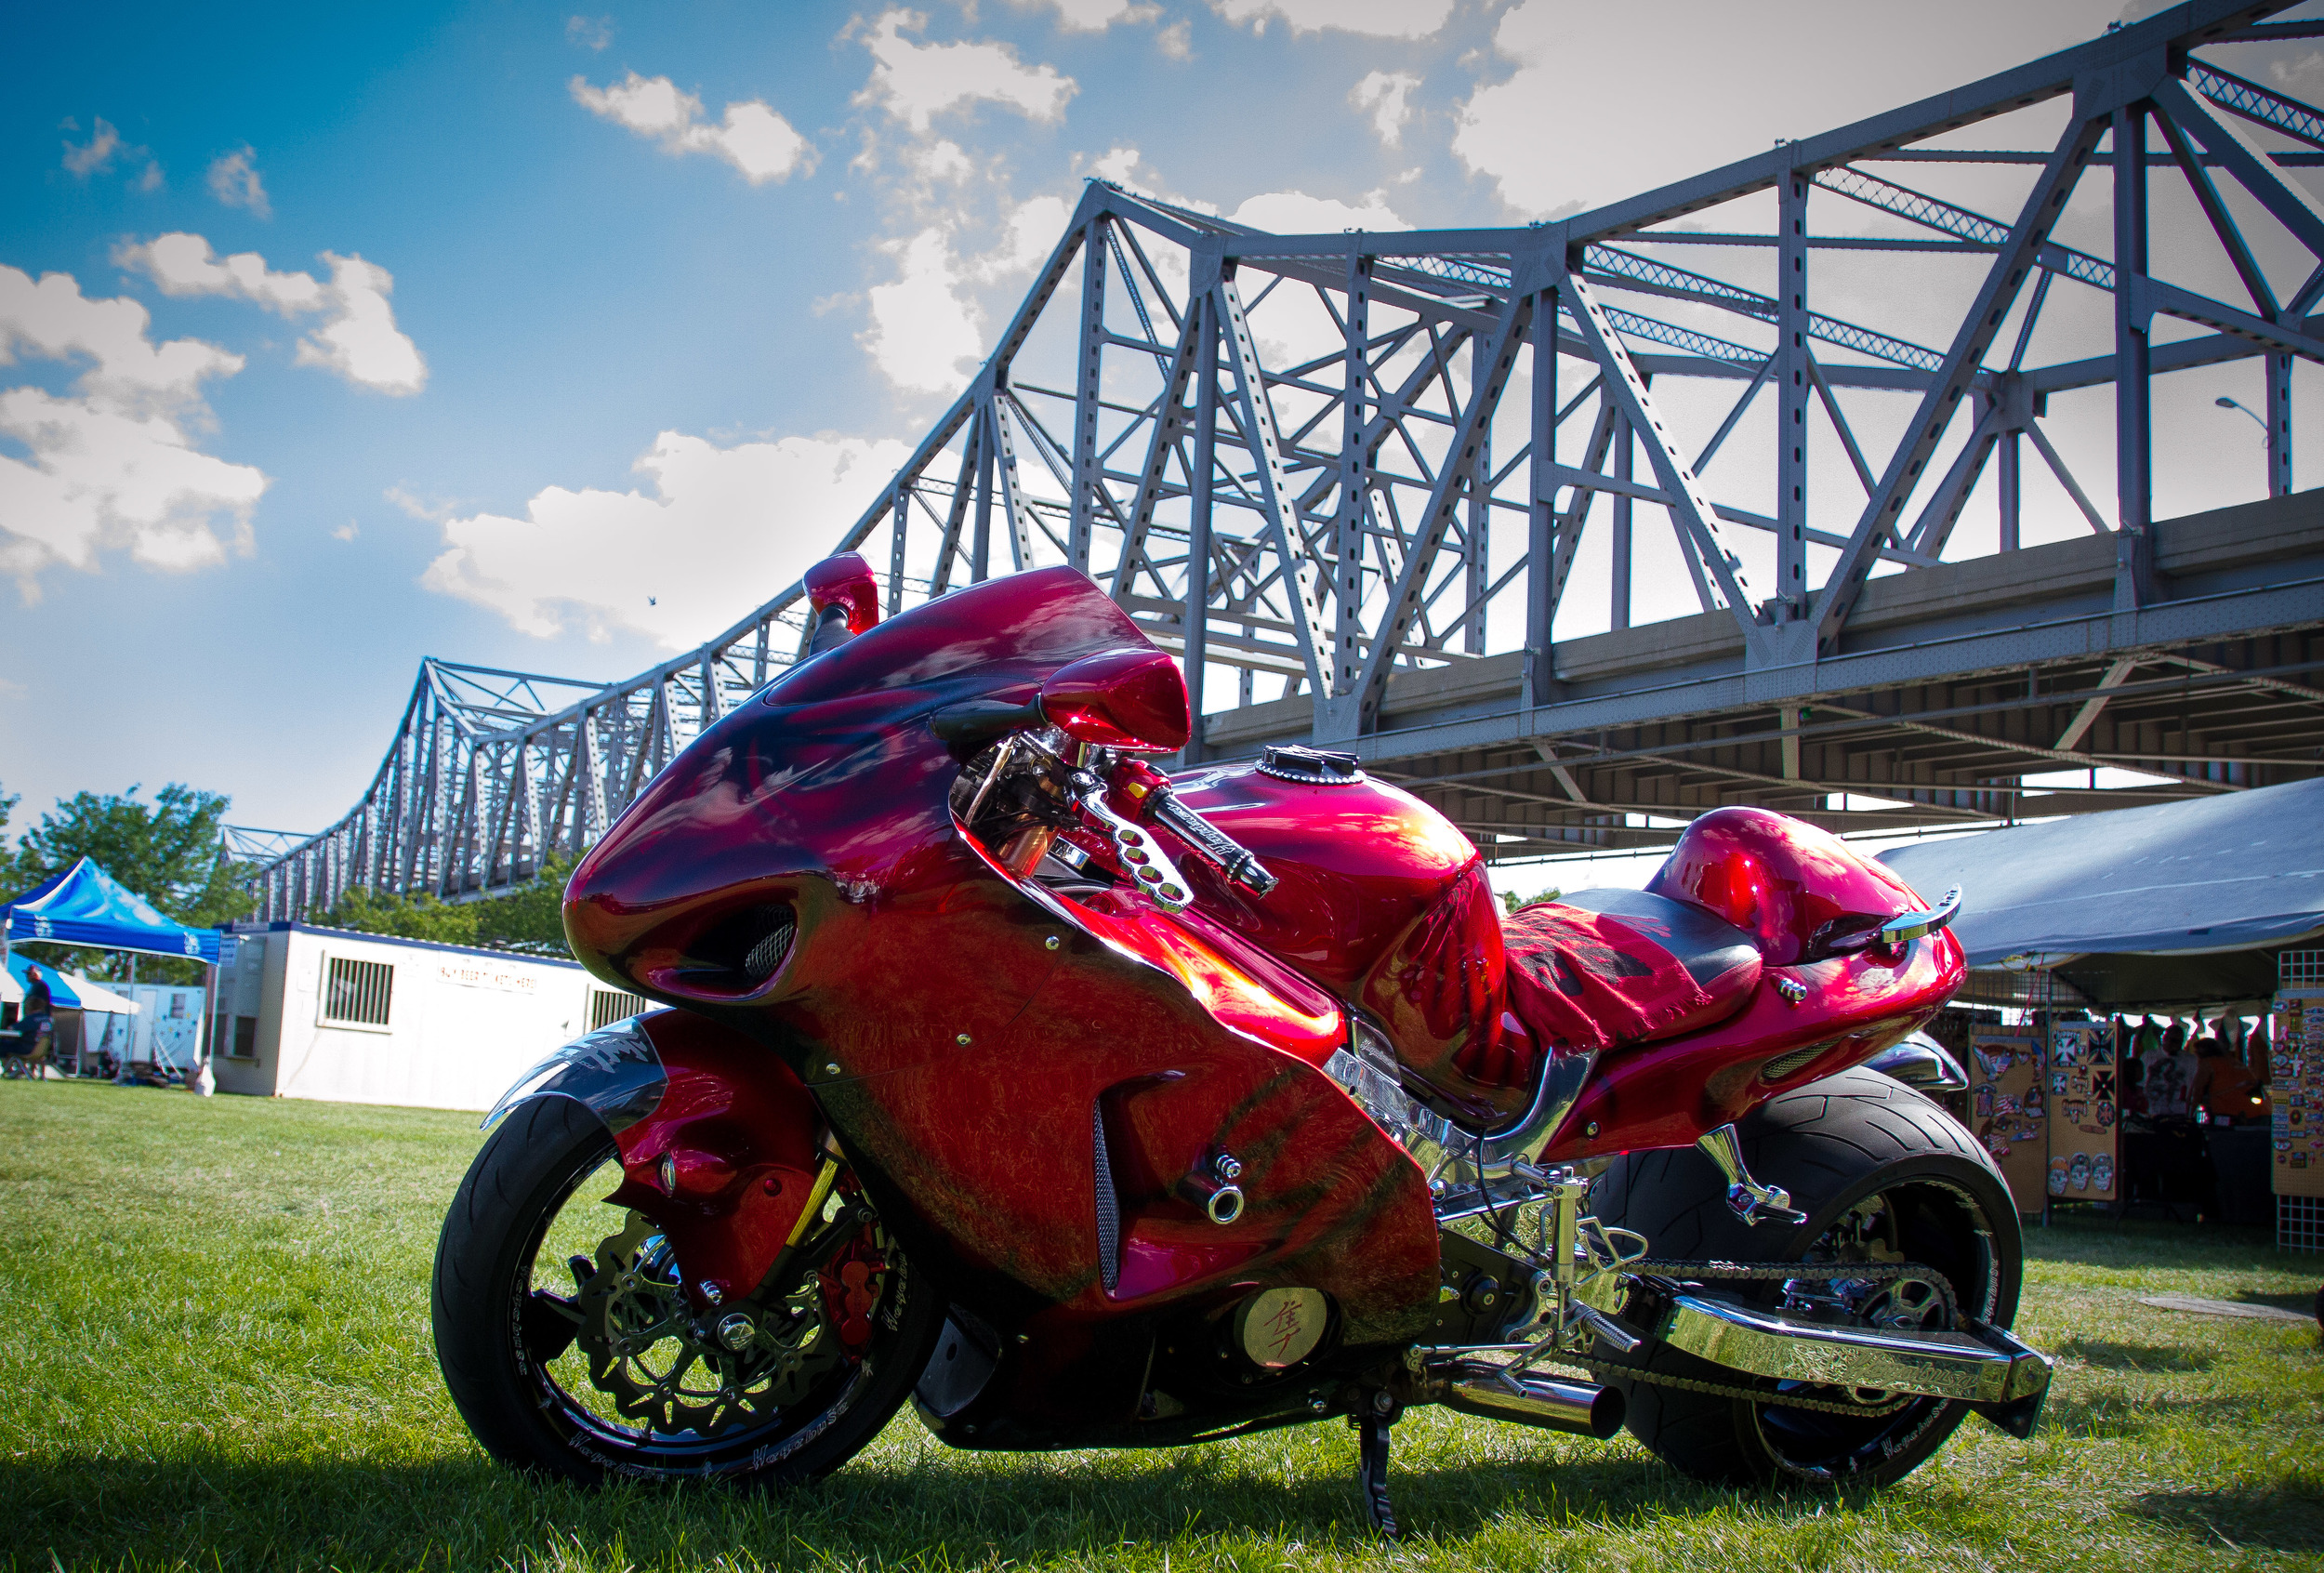 A custom 2005 Suzuki Hayabusa at the Peoria Grand Nationals Bike Rally in Peoria, IL